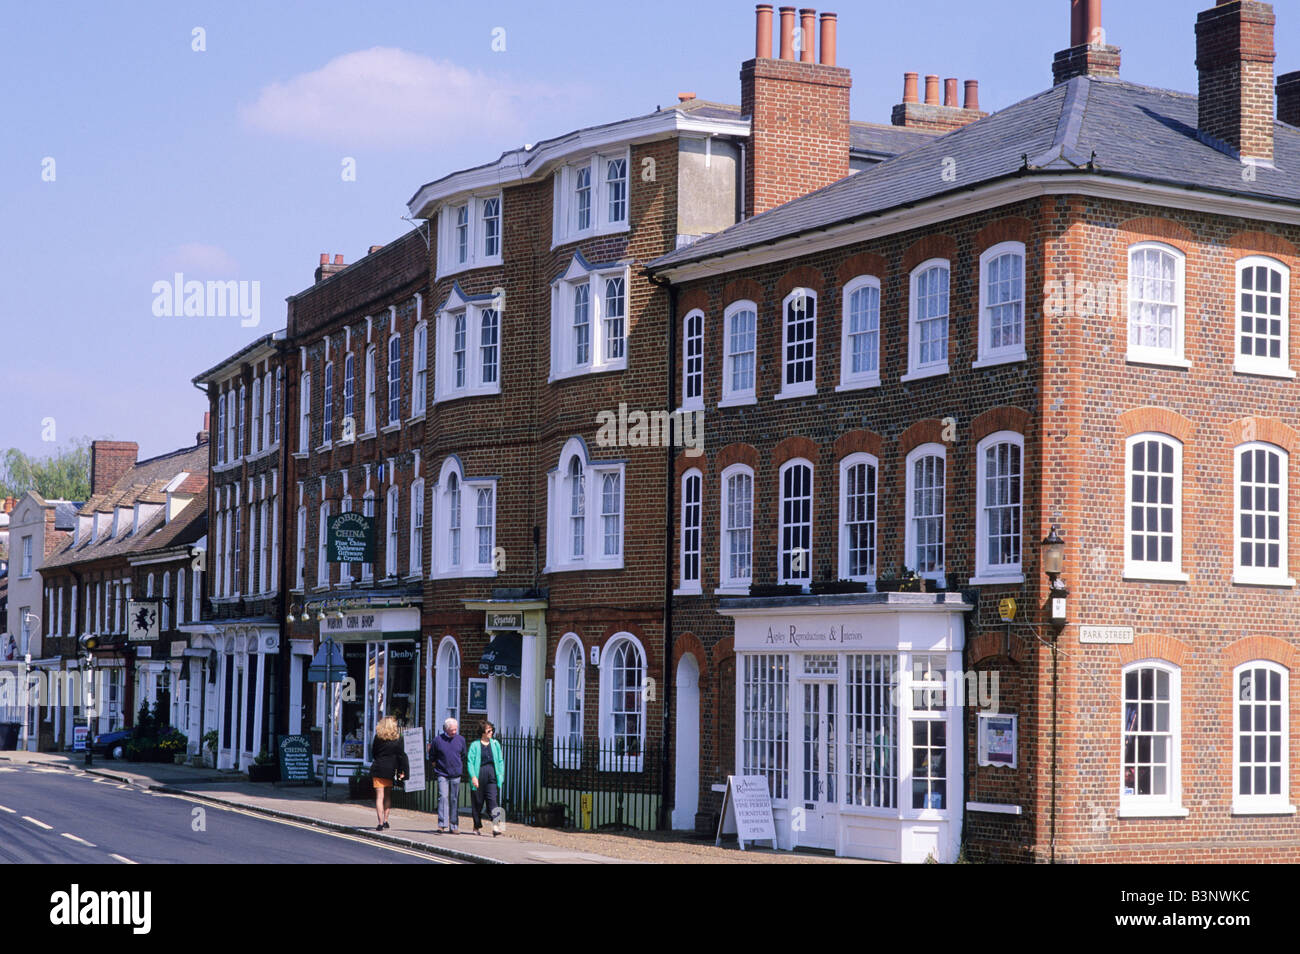 Woburn Market Place Bedfordshire town townscape English Georgian buildings terrace shops architecture England UK - Stock Image